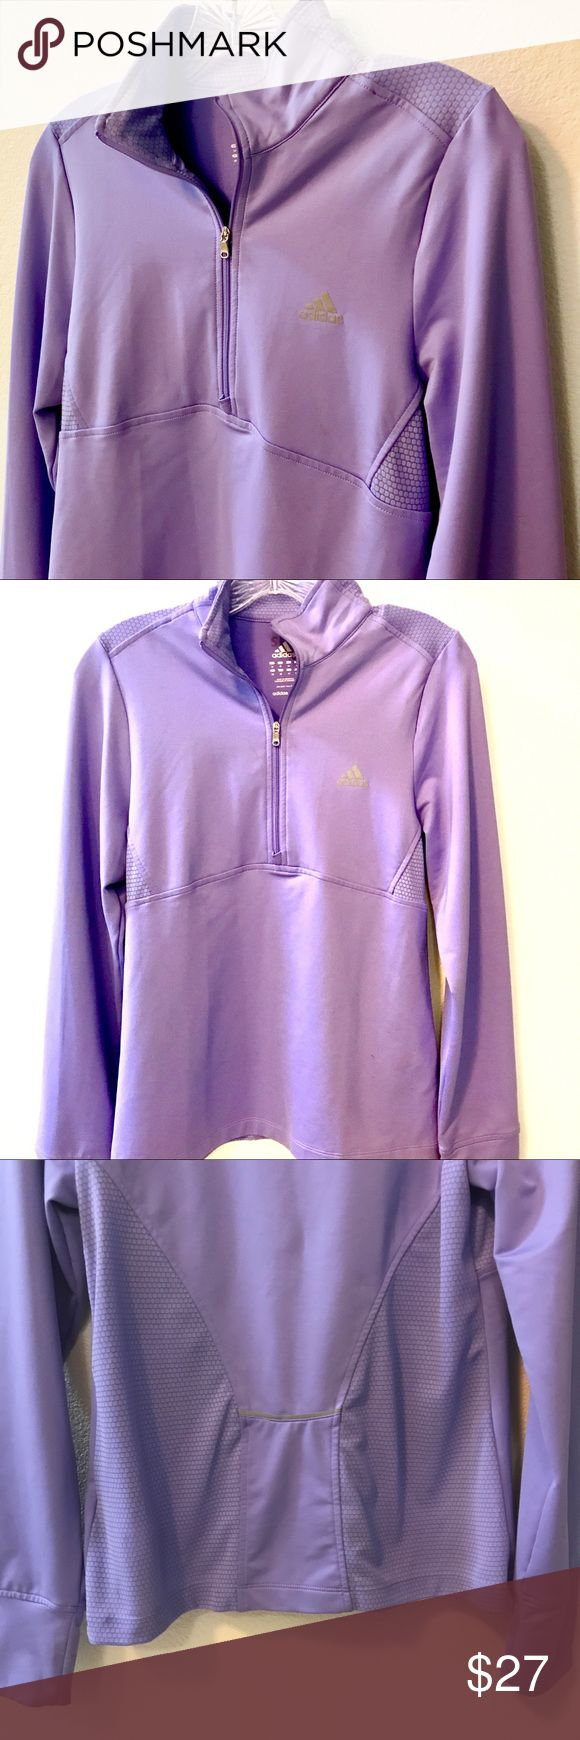 Adidas Workout Jacket Lavender colored, pictures shown with and without flash 🌼 size medium 🌼 reflective detailing on back 🌼 mesh-like material as shown in pictures 🌼 I need to spot clean some areas but other then that it's like-new 🌼 adidas Brand 🌼 adidas Tops